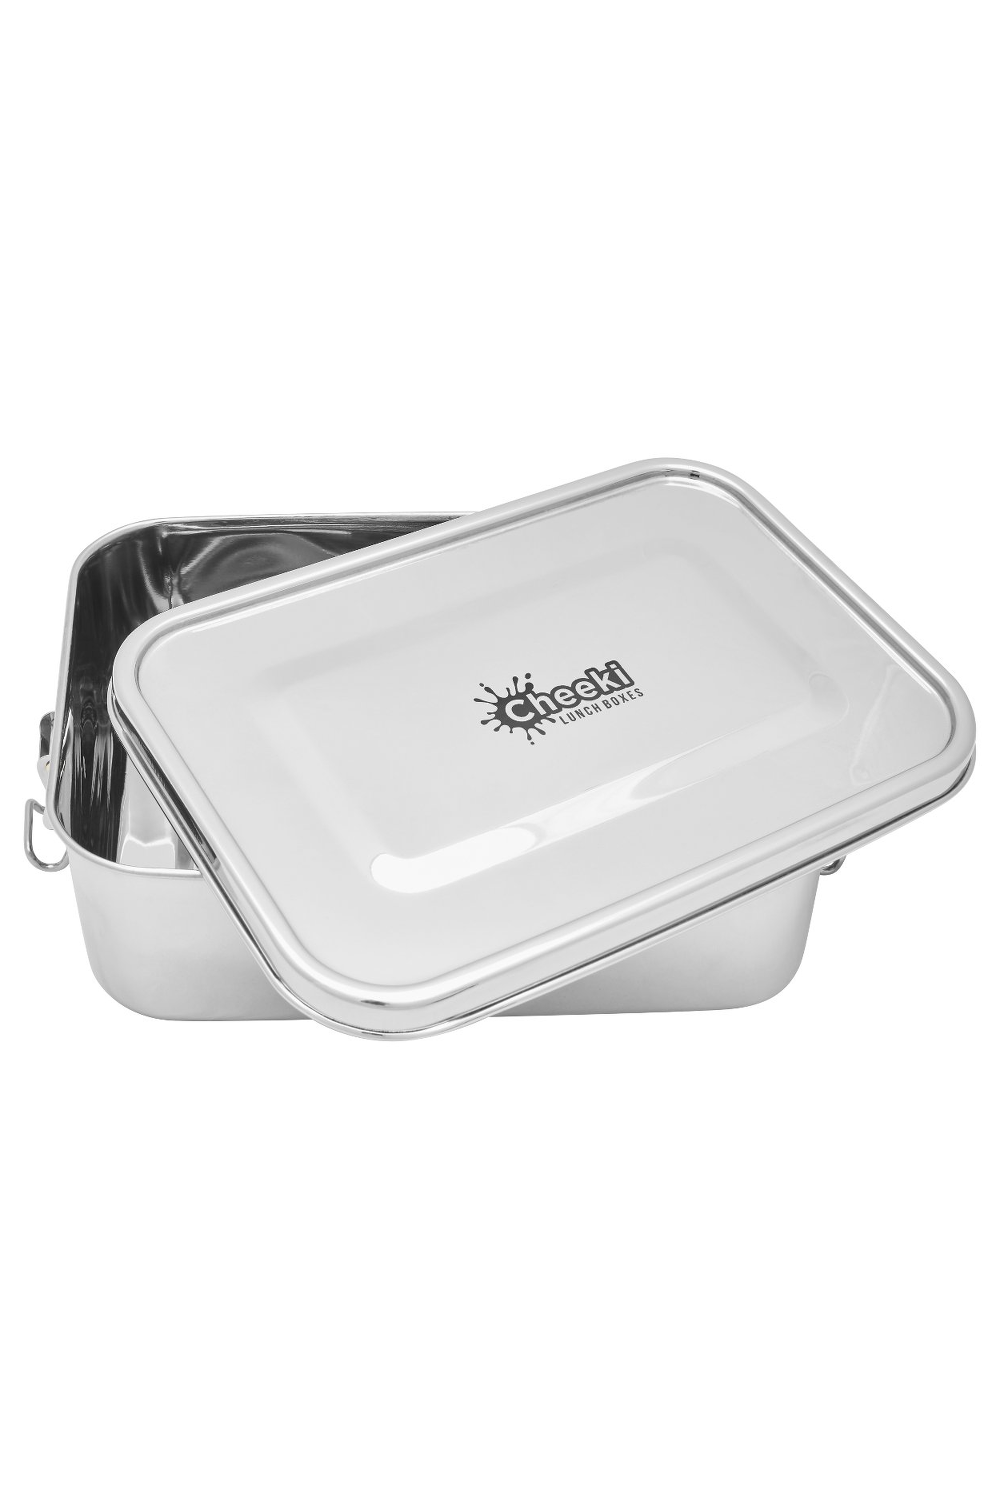 Cheeki | Cheeki 500ml lunch box | Plastic Free Living | Environmentally Friendly Homewares